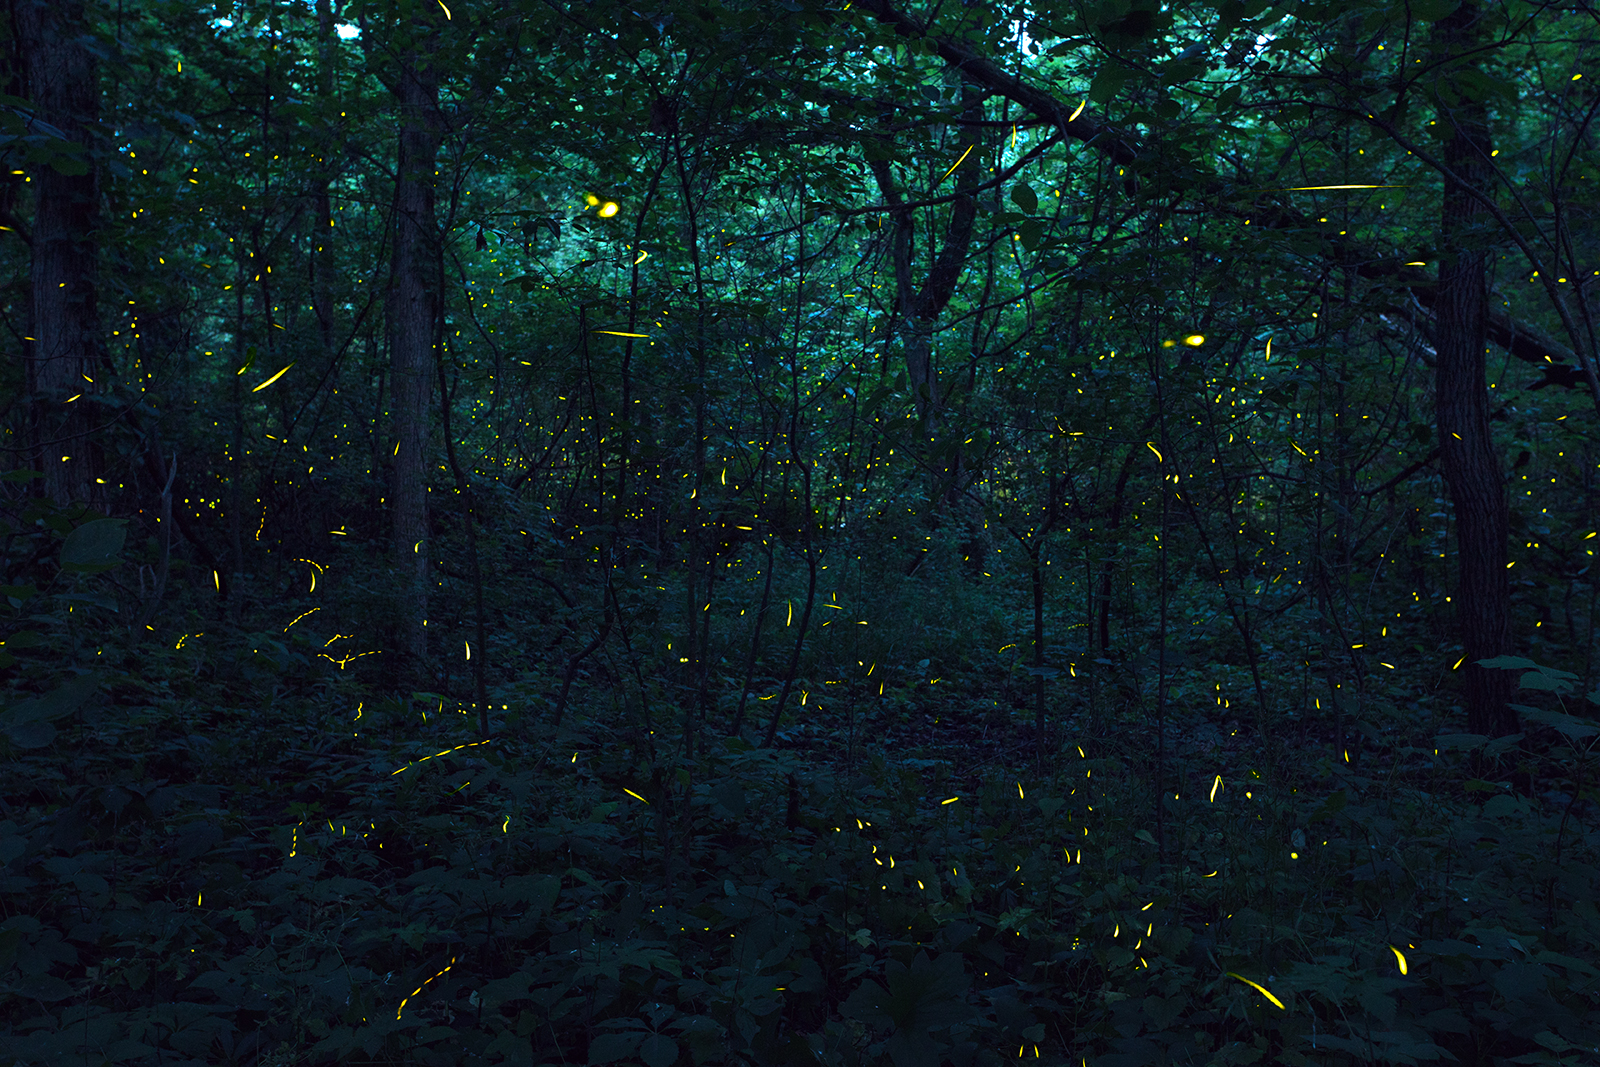 Fireflies in a wood